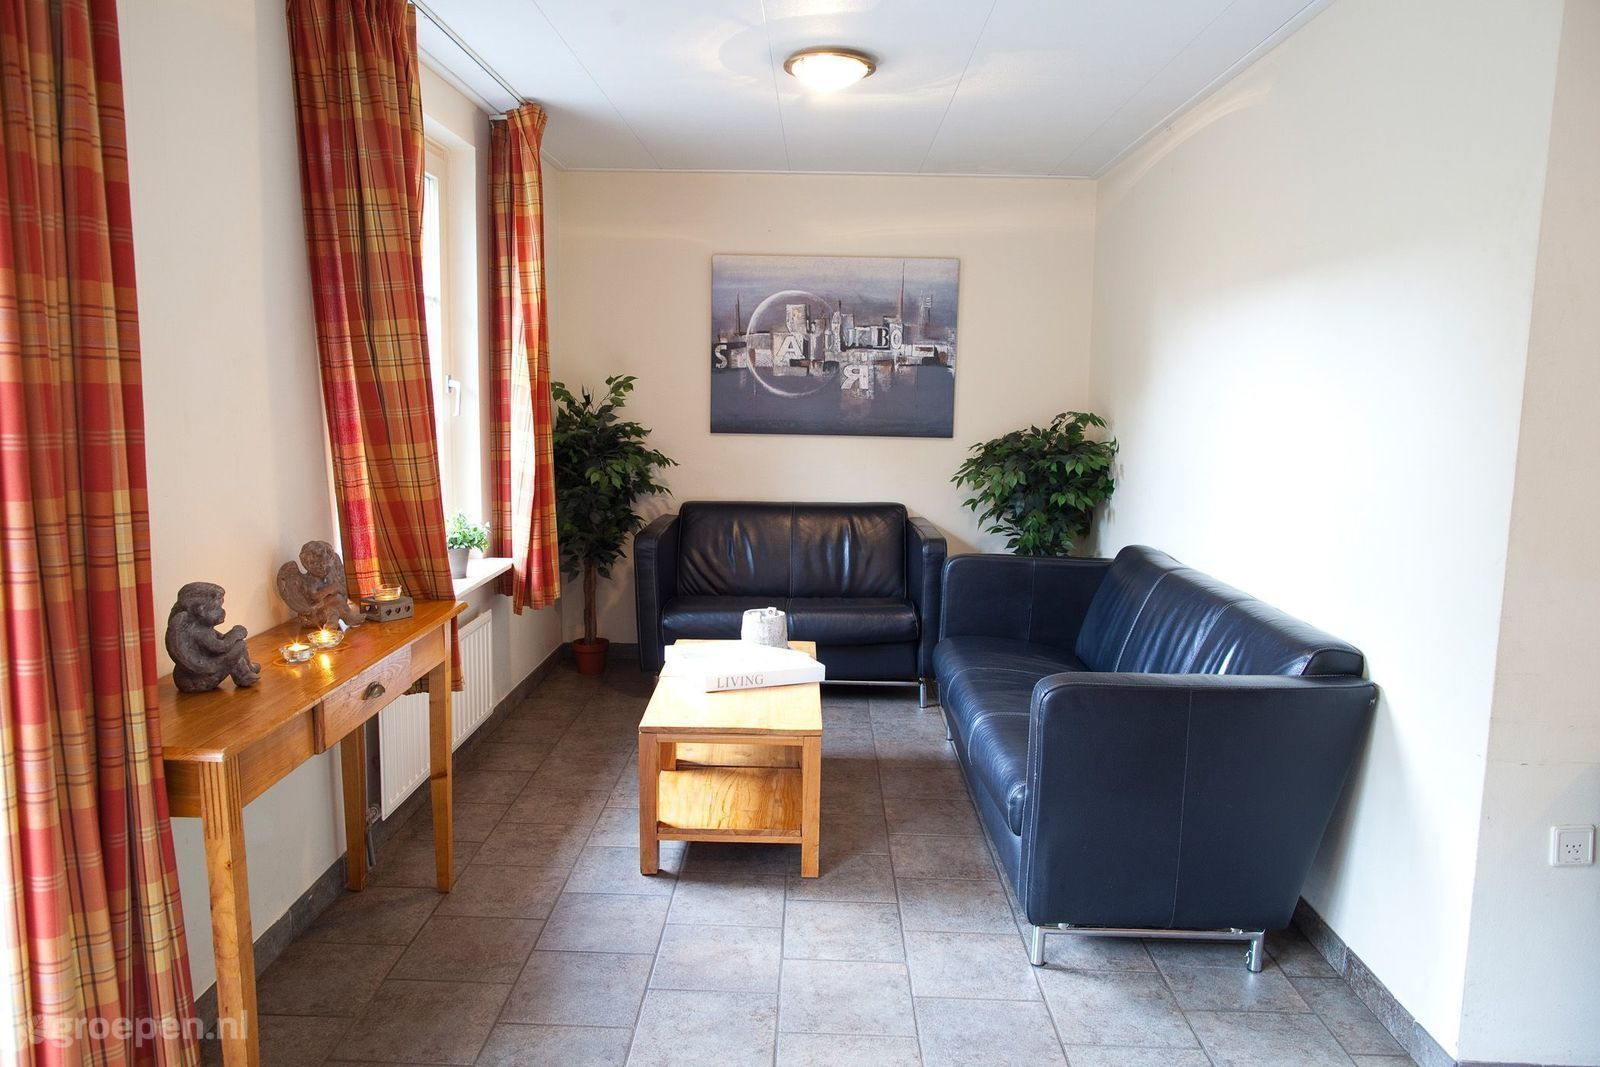 Group accommodation Ysselsteyn